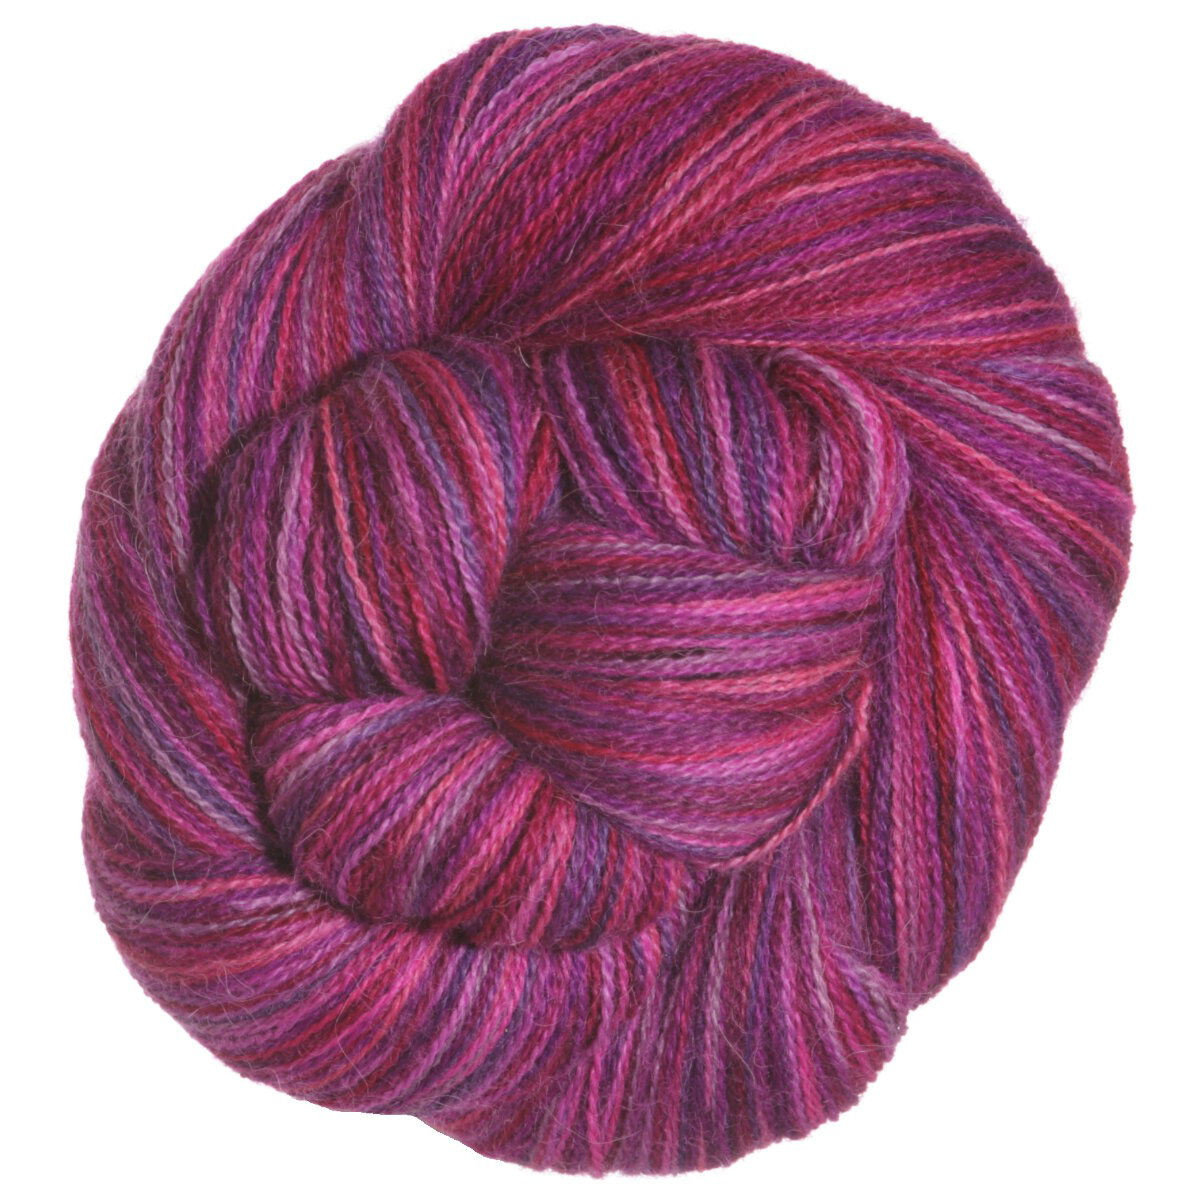 Lace Yarn Lovely Misti Alpaca Hand Paint Lace Yarn Lp44 La Boheme at Of Amazing 44 Pictures Lace Yarn